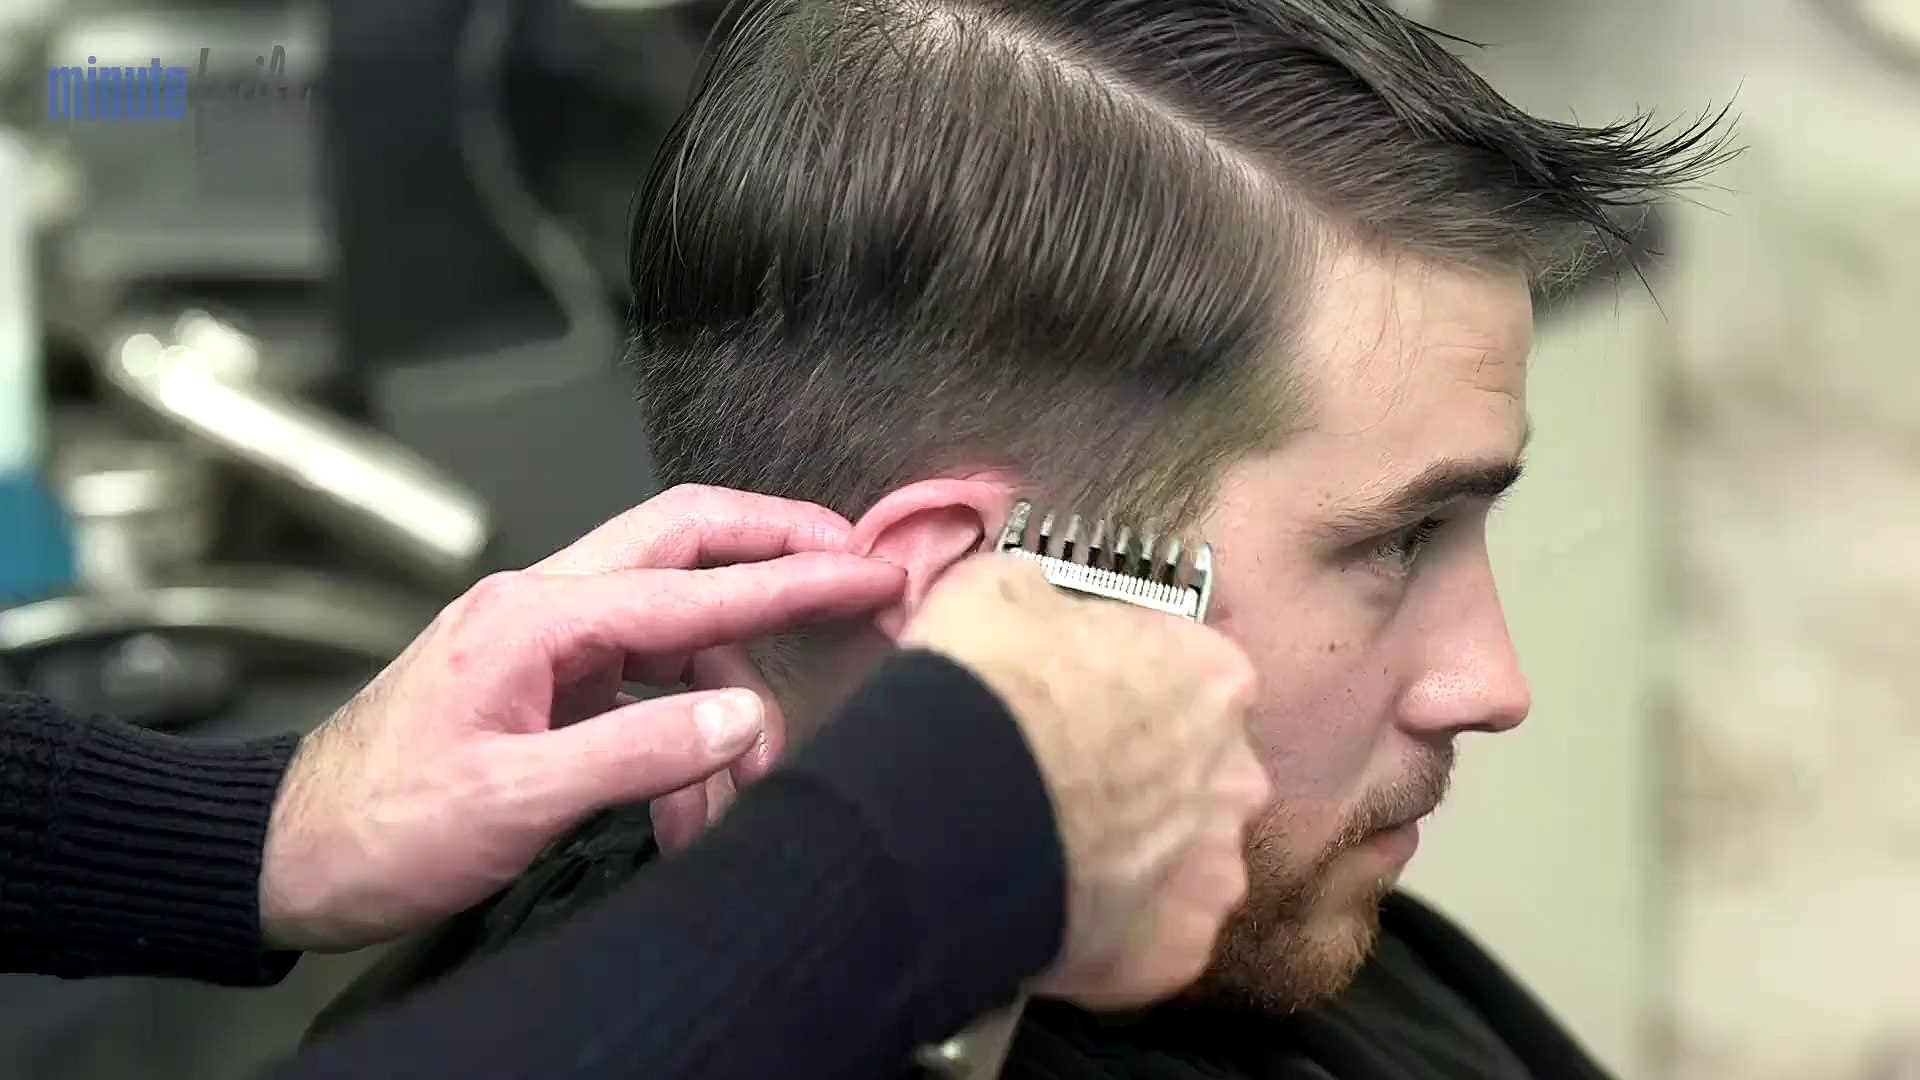 Beaute Mode Tuto Coiffure Homme Coupe De George Clooney Video Dailymotion